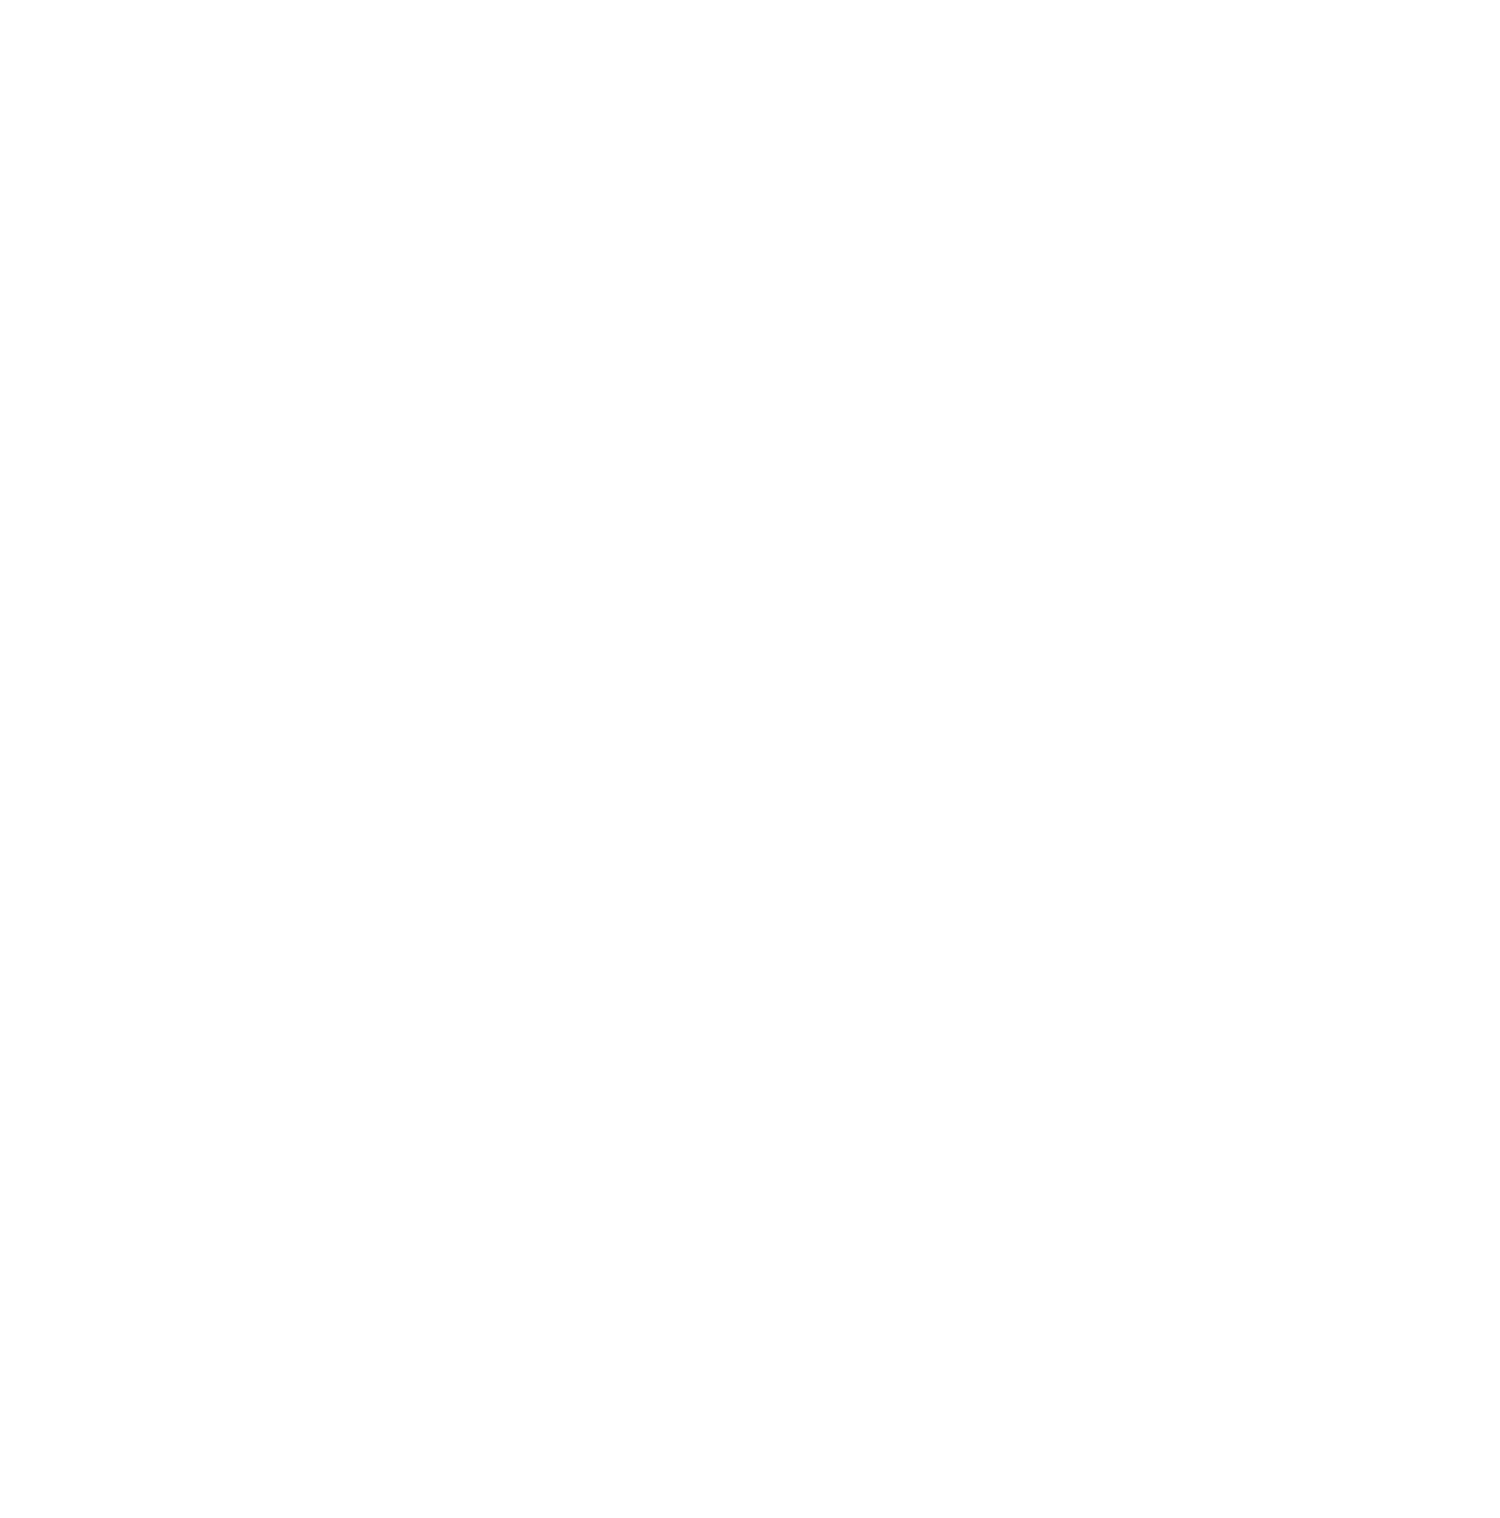 We Care of Grundy County